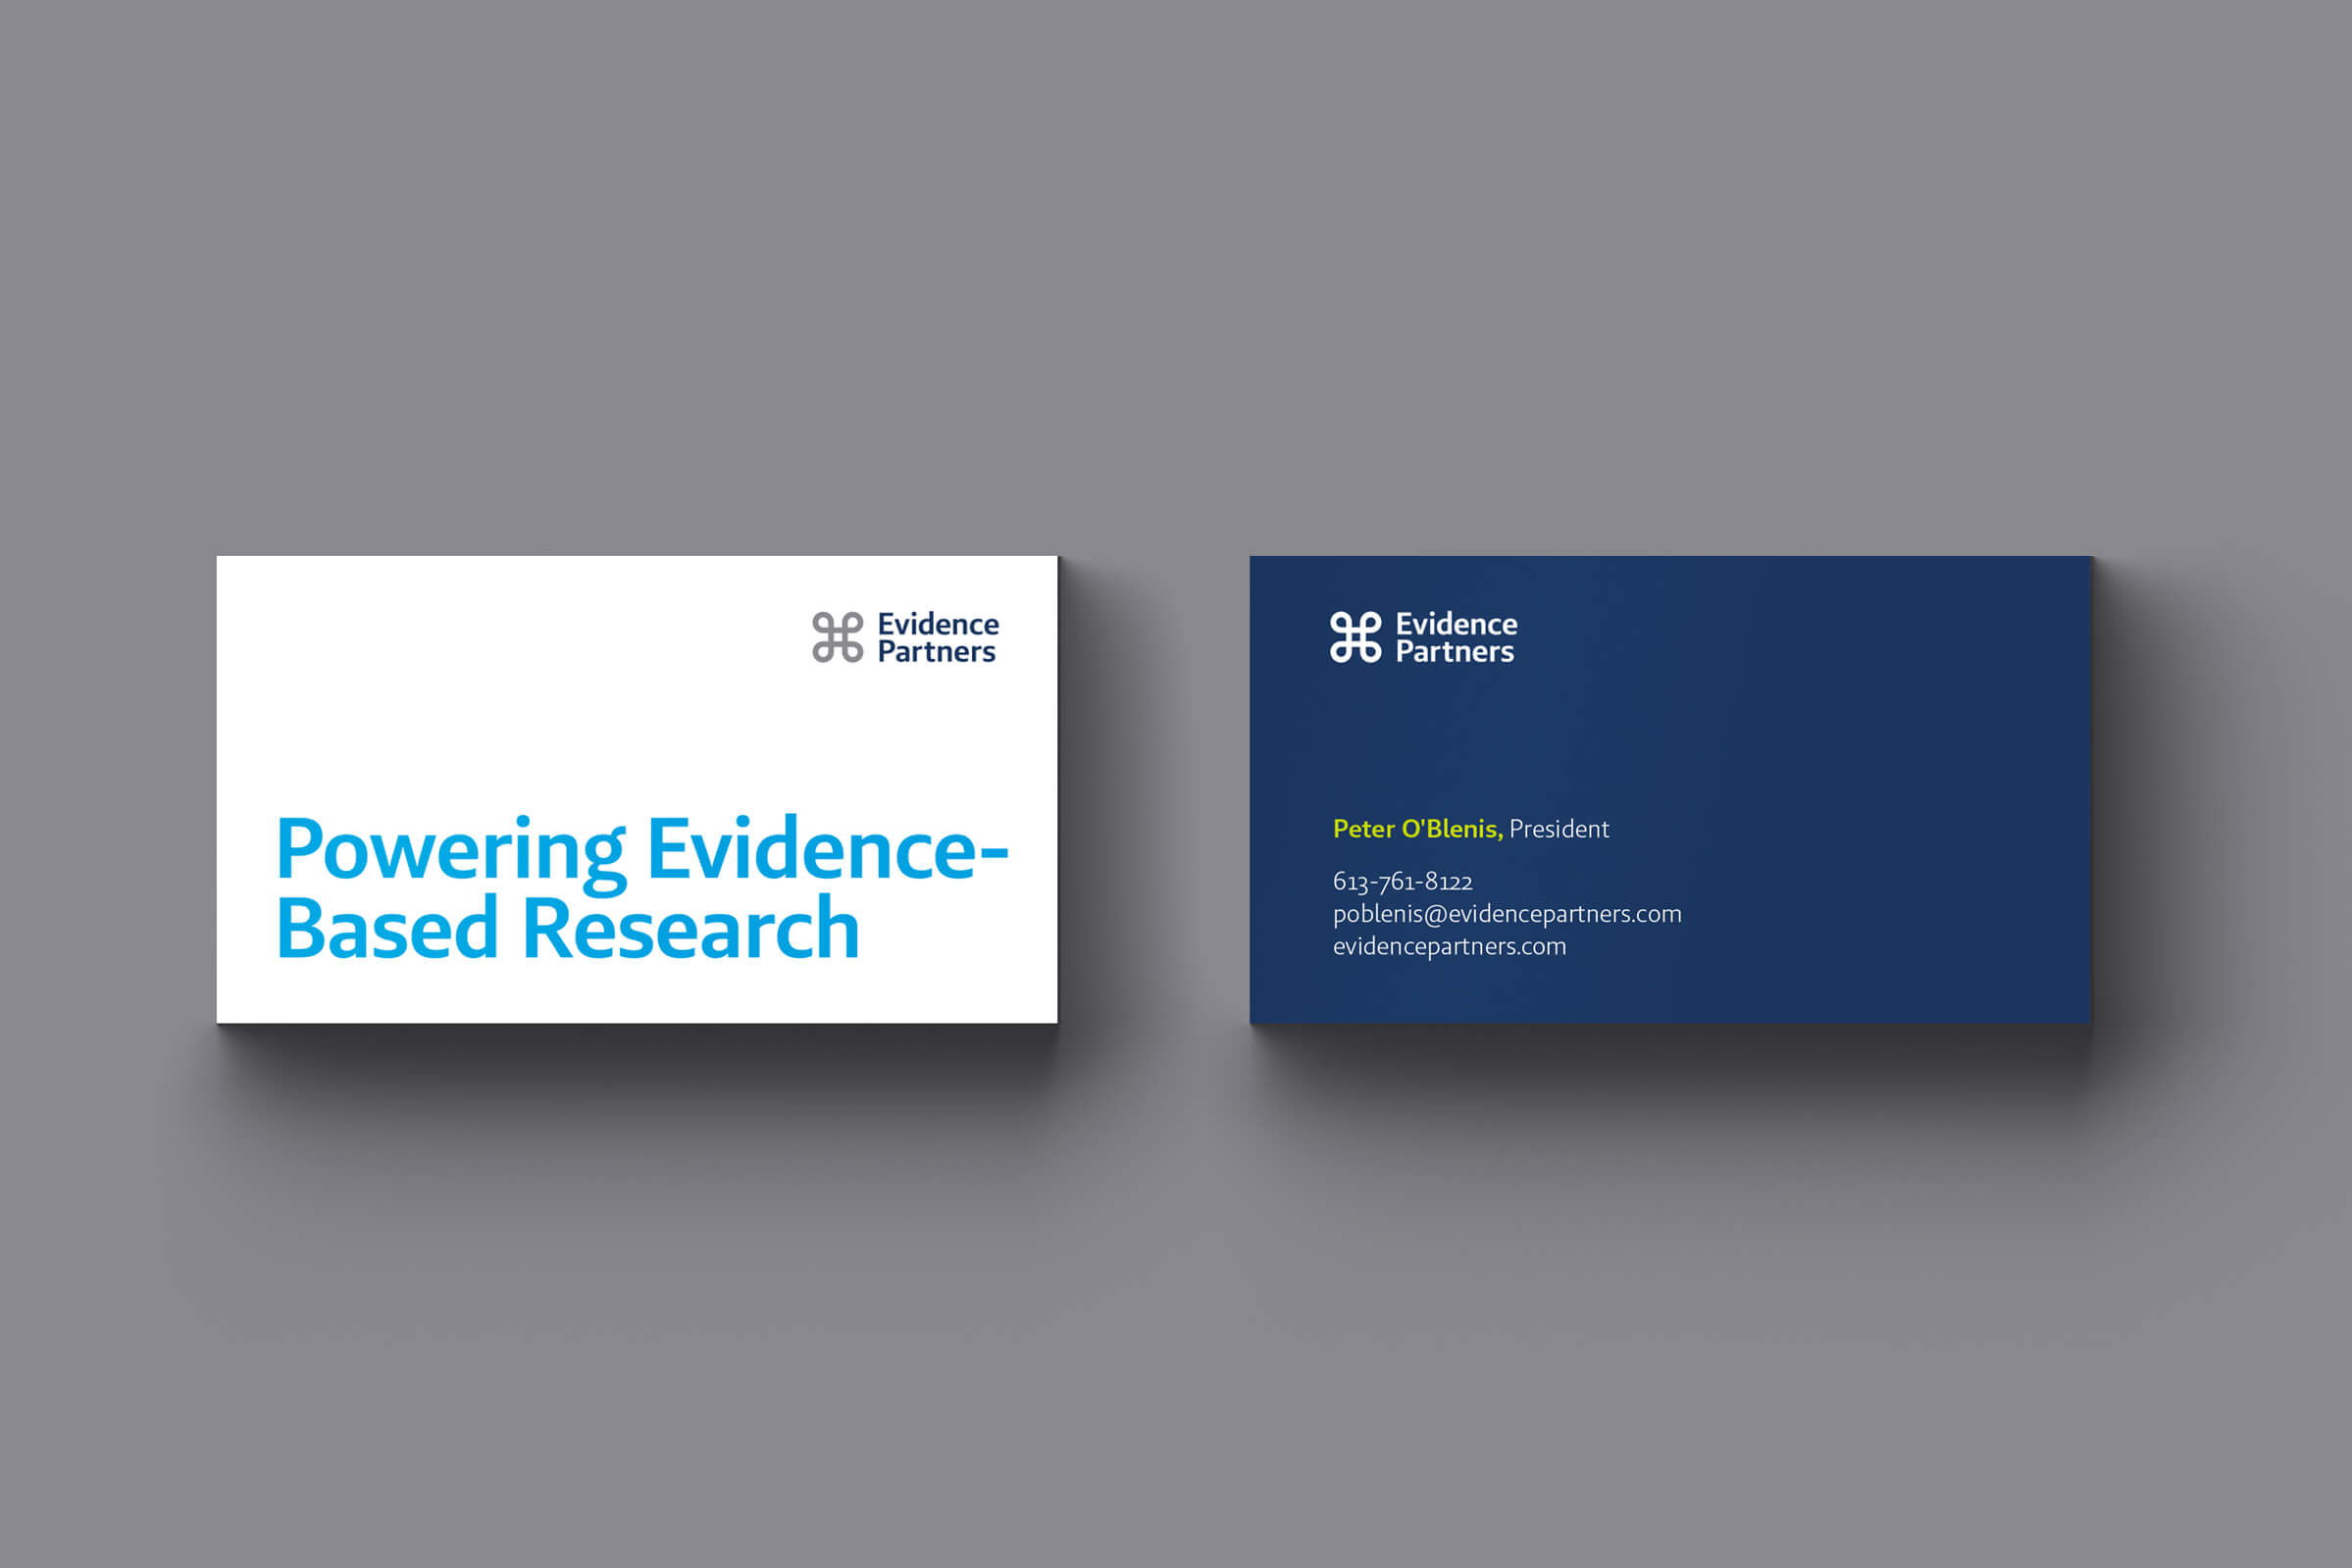 Evidence Partners Business Card by Ottawa Graphic Designer idApostle